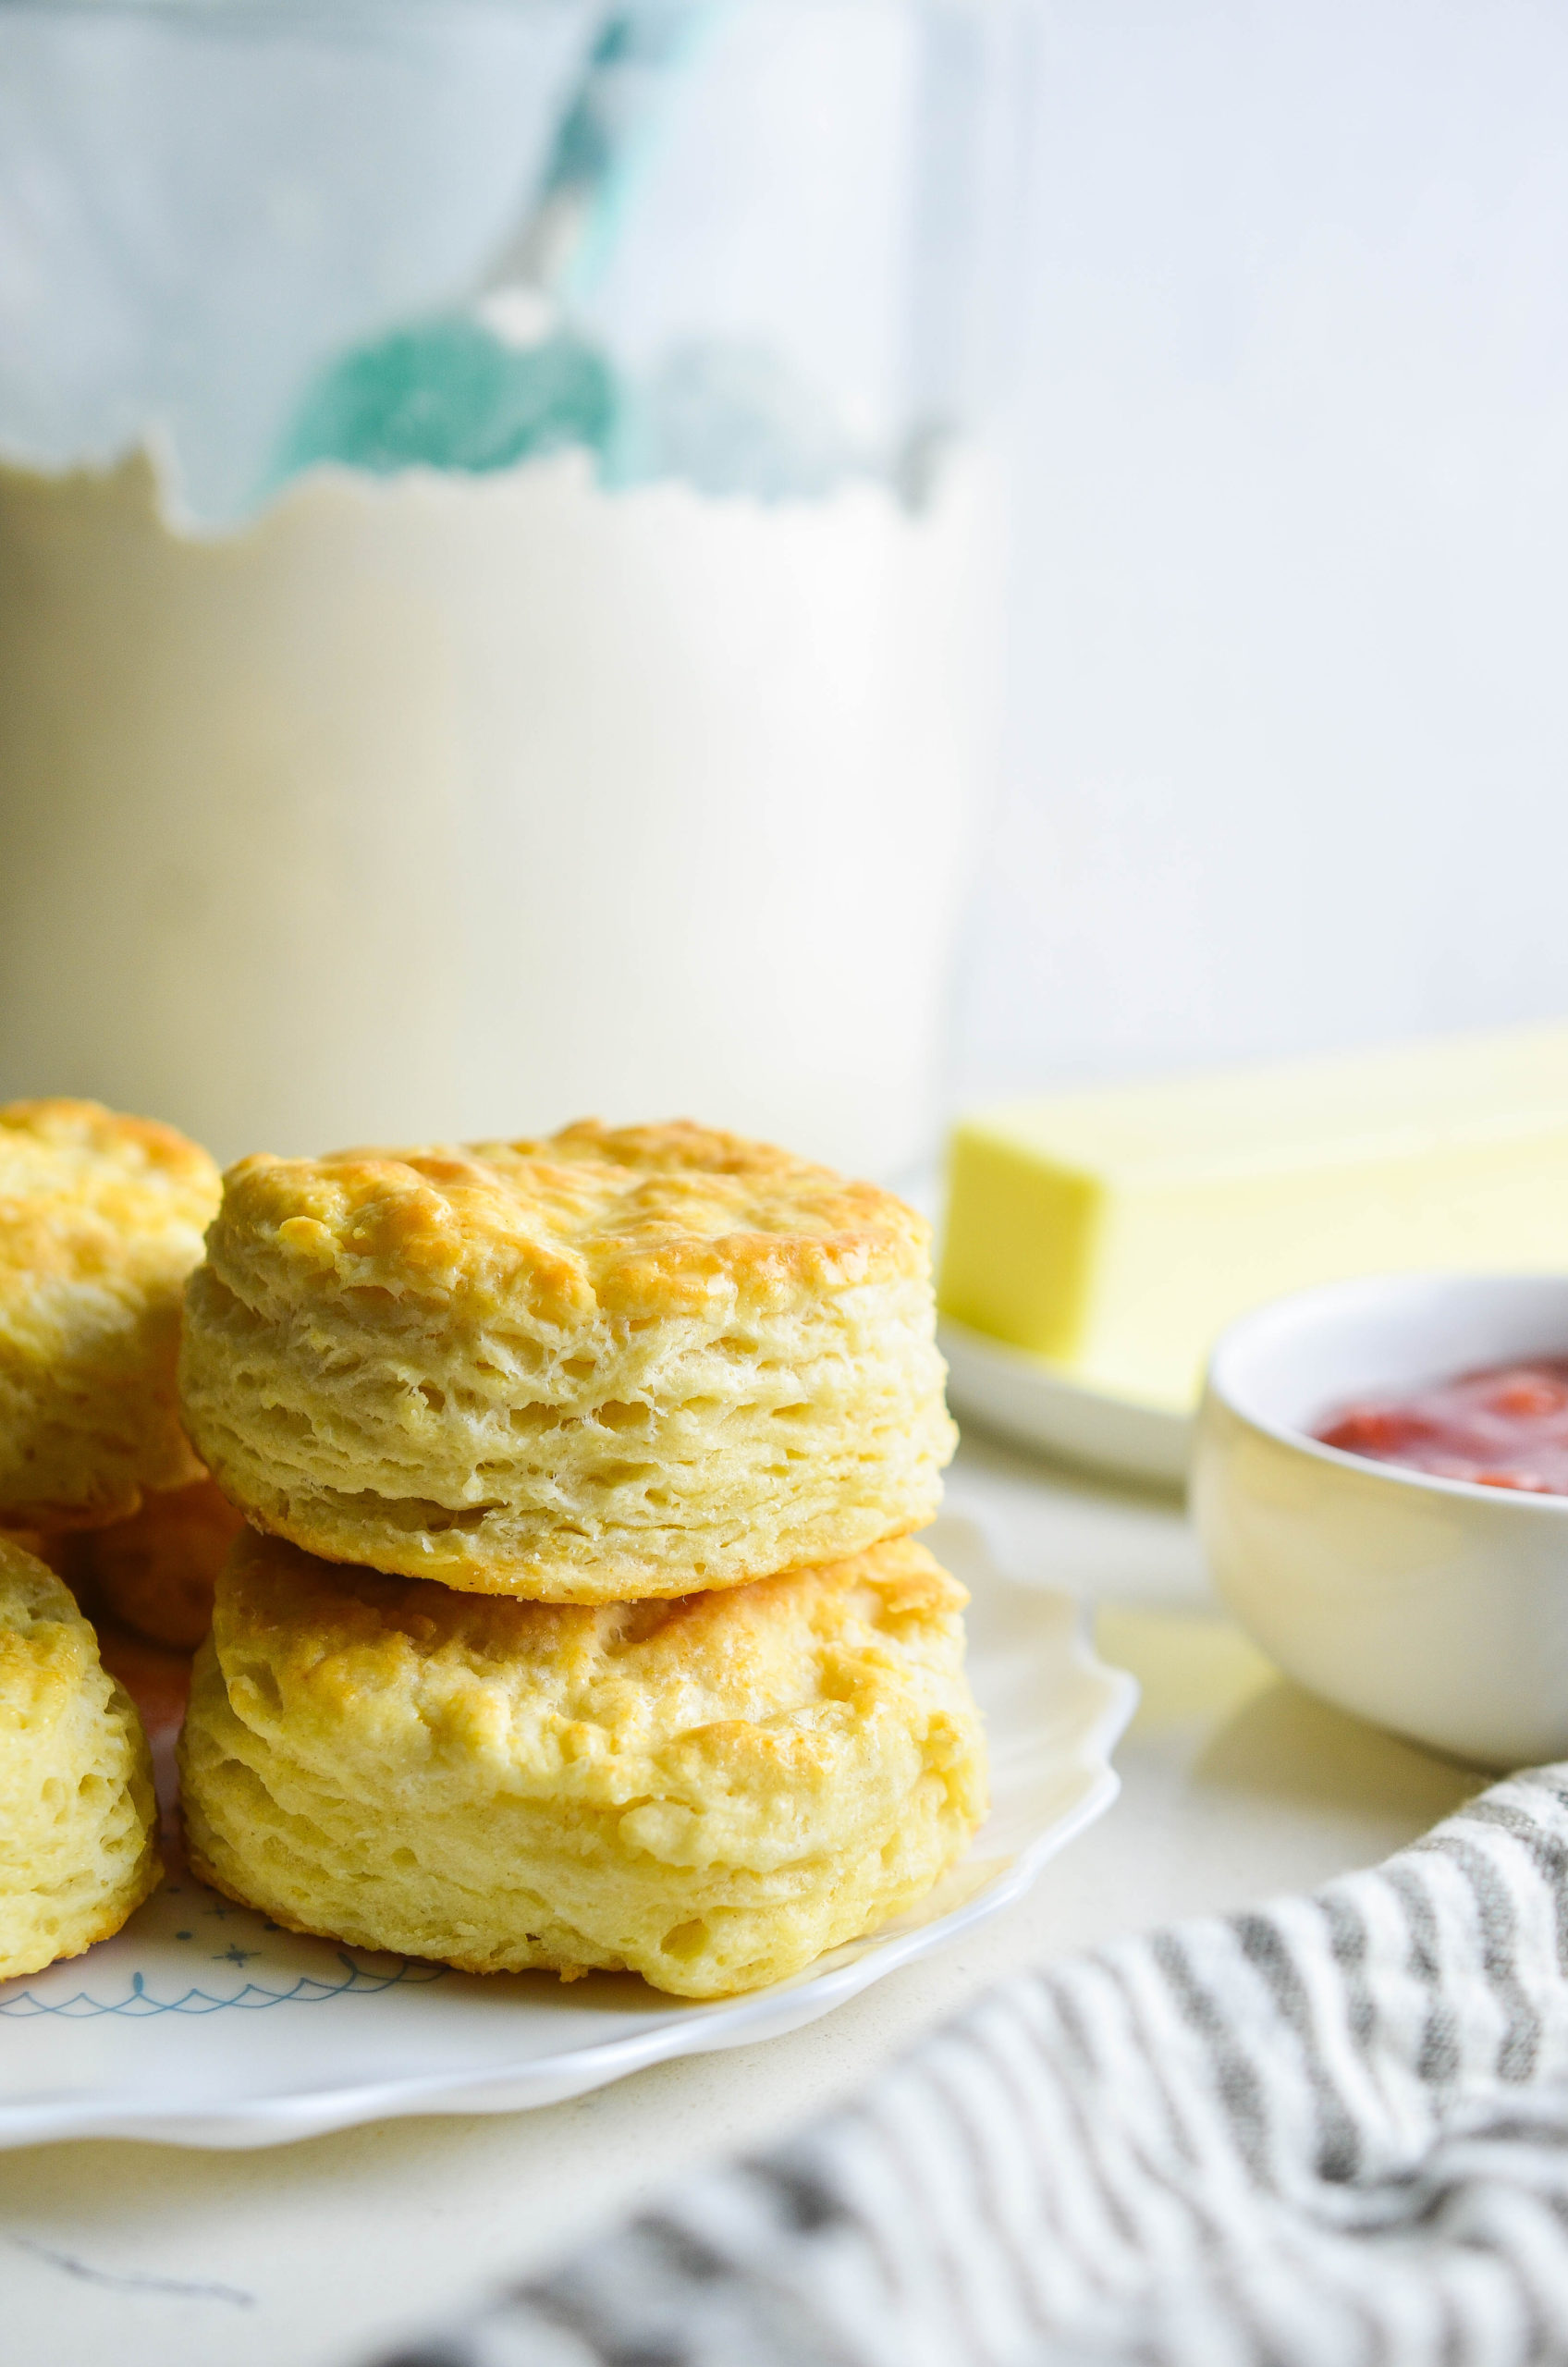 Two buttermilk biscuits staked on top of each other.